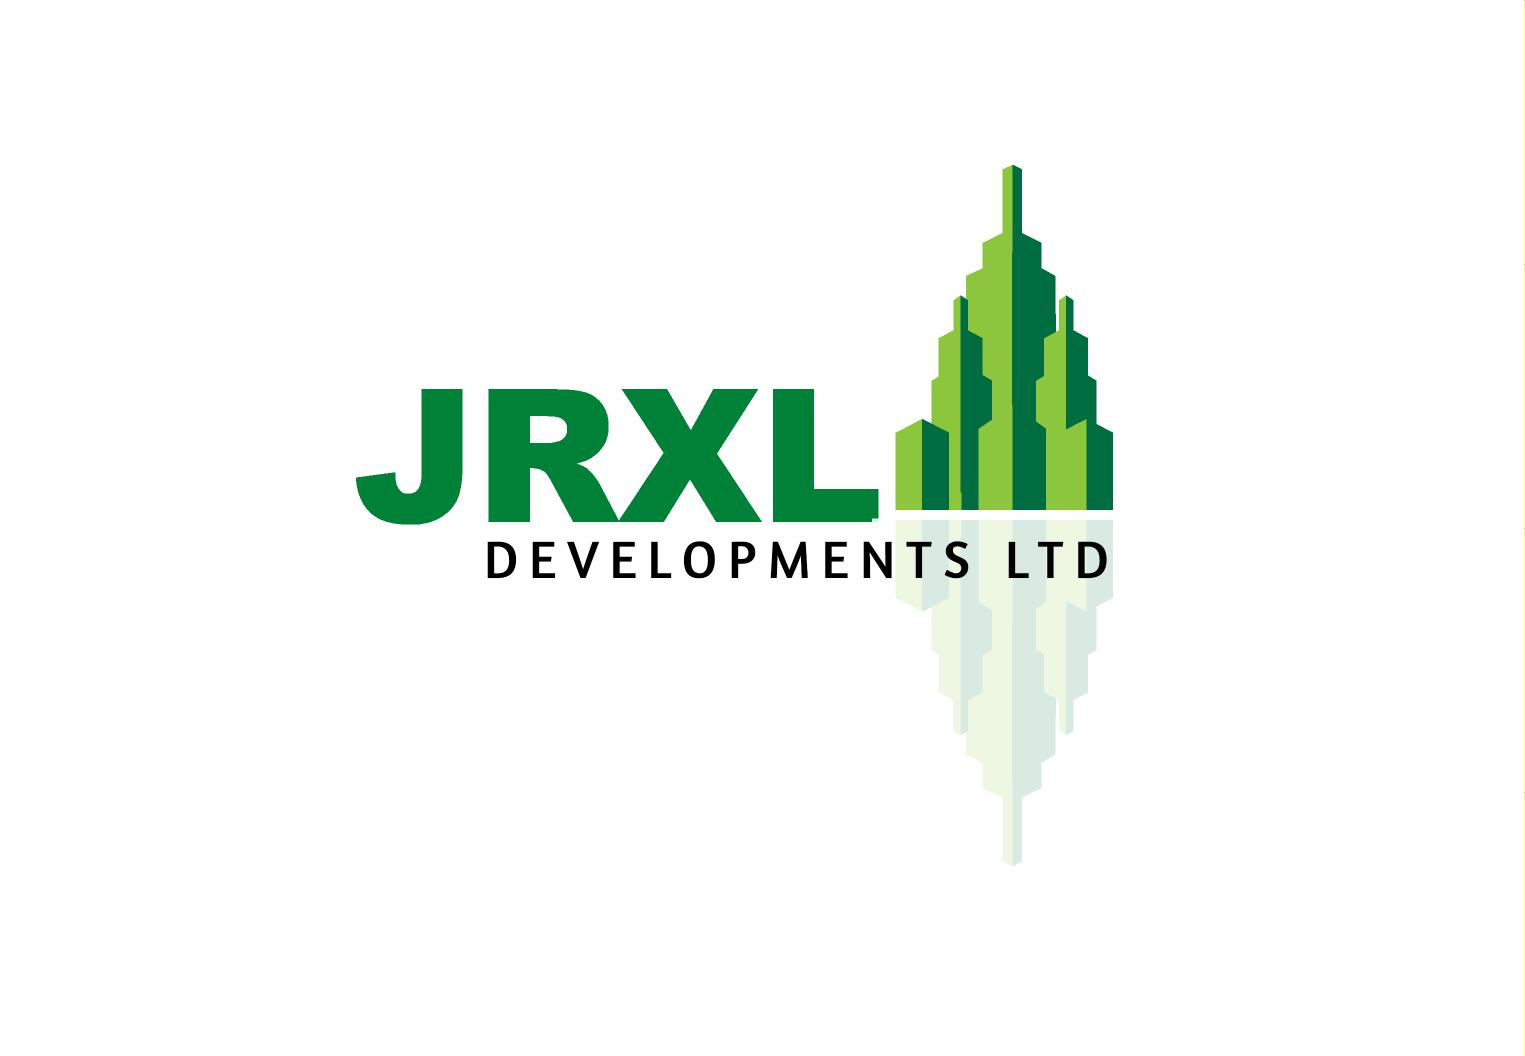 Logo Design by ZAYYADI AHMAD - Entry No. 78 in the Logo Design Contest JRXL DEVELOPMENTS LTD Logo Design.